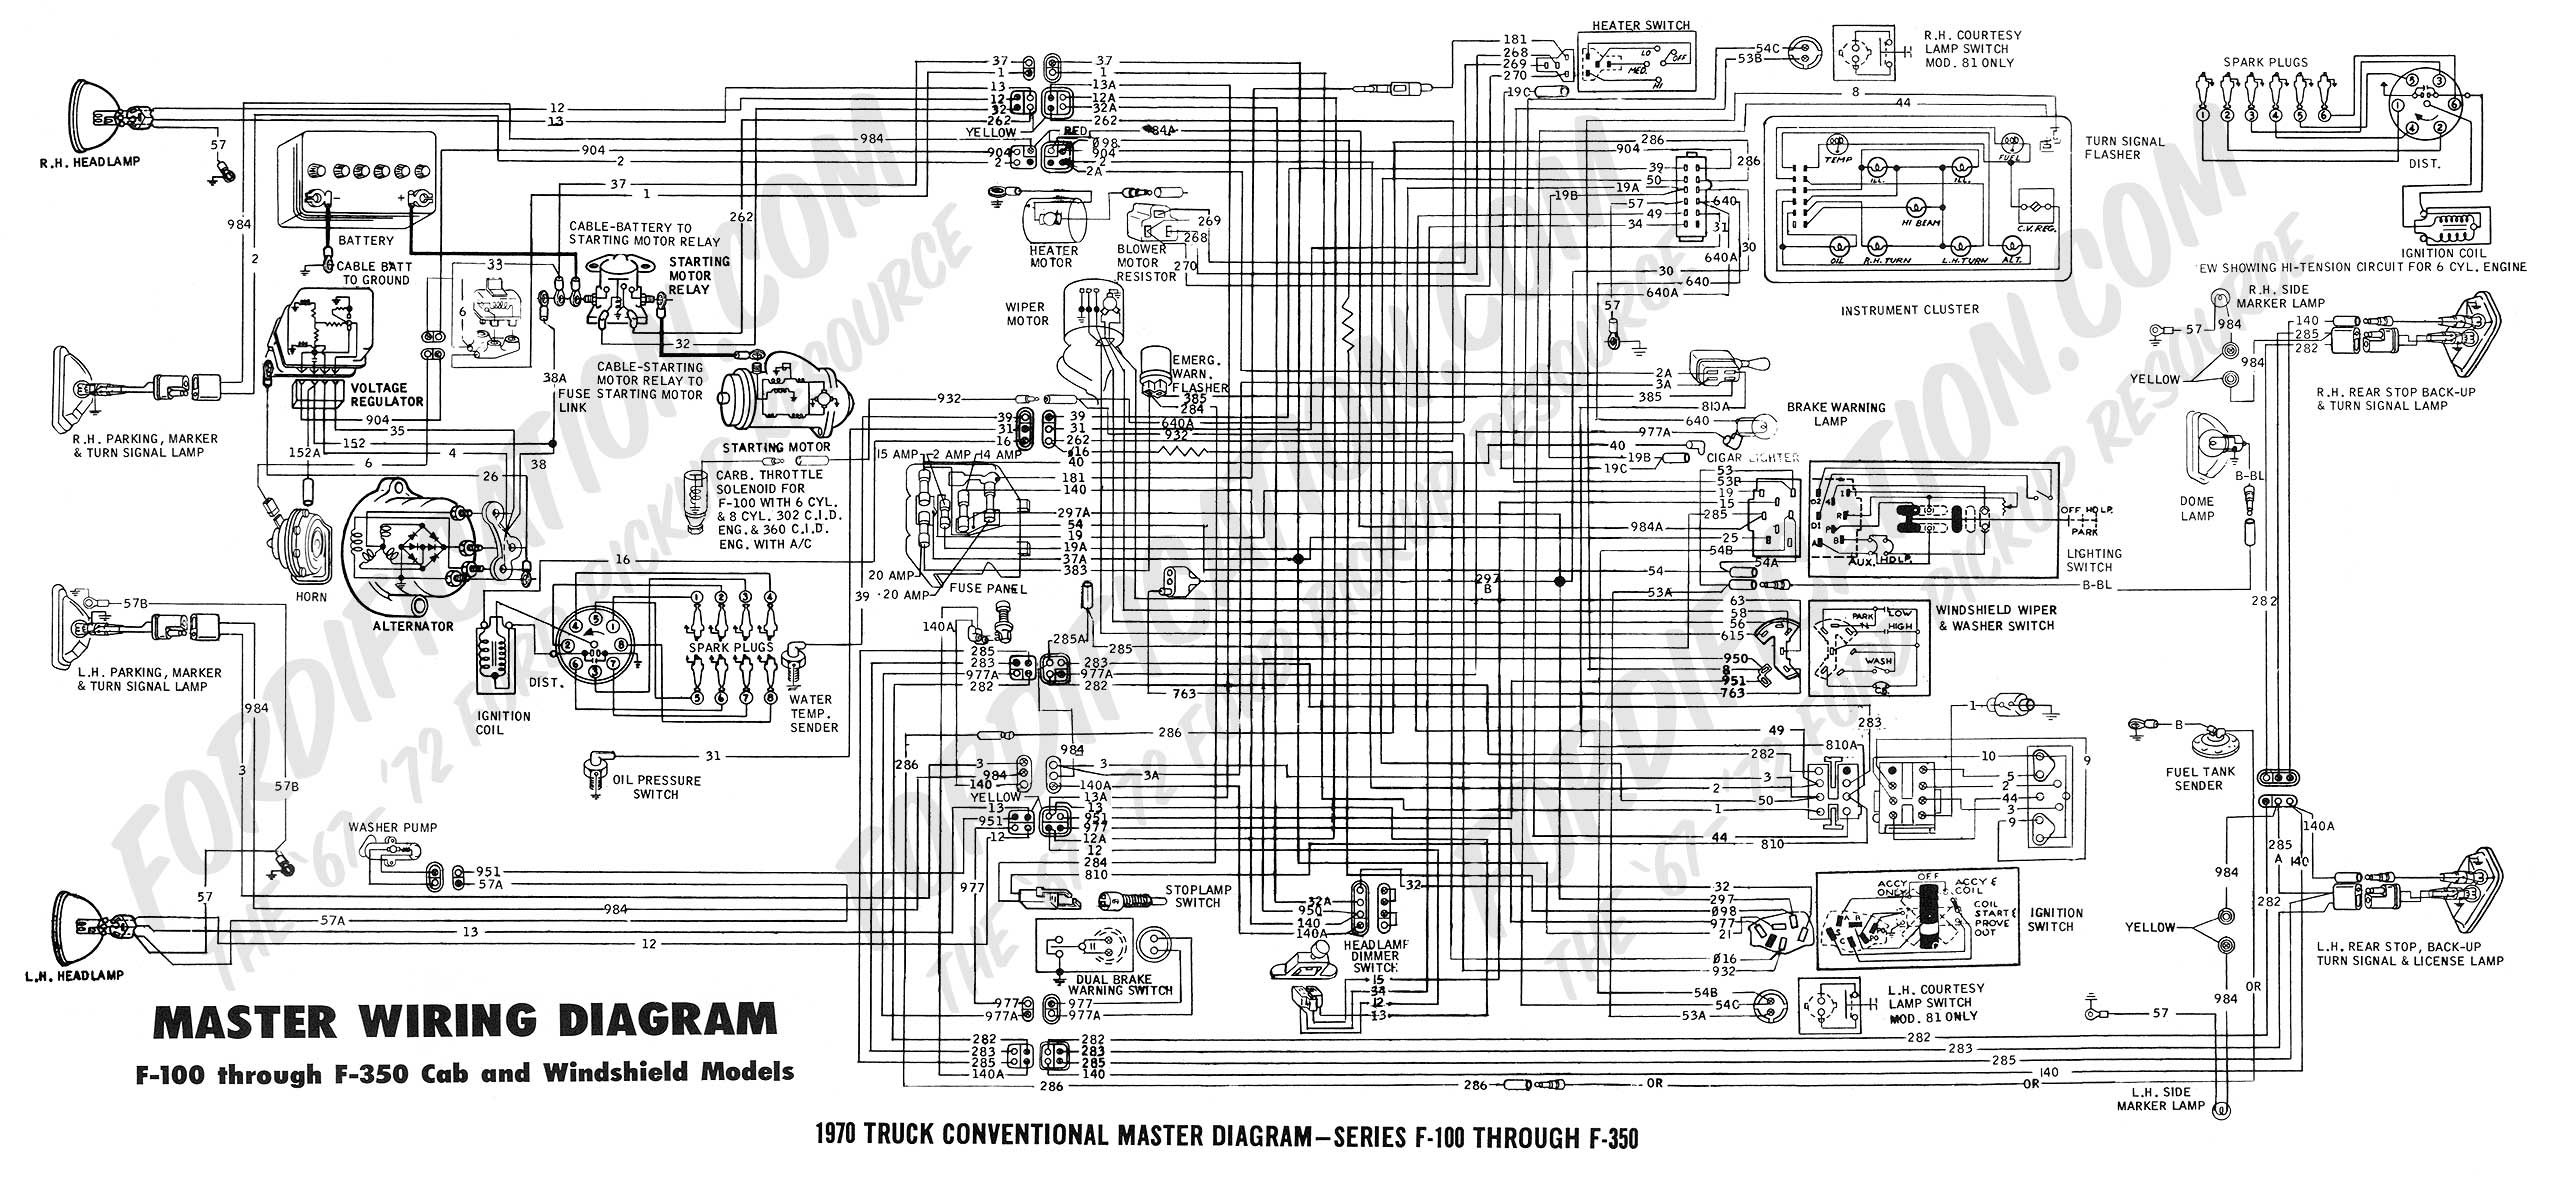 1995 ford ranger radio wiring diagram images wiring diagram in 1995 ford ranger wiring diagram furthermore f100 diagrams